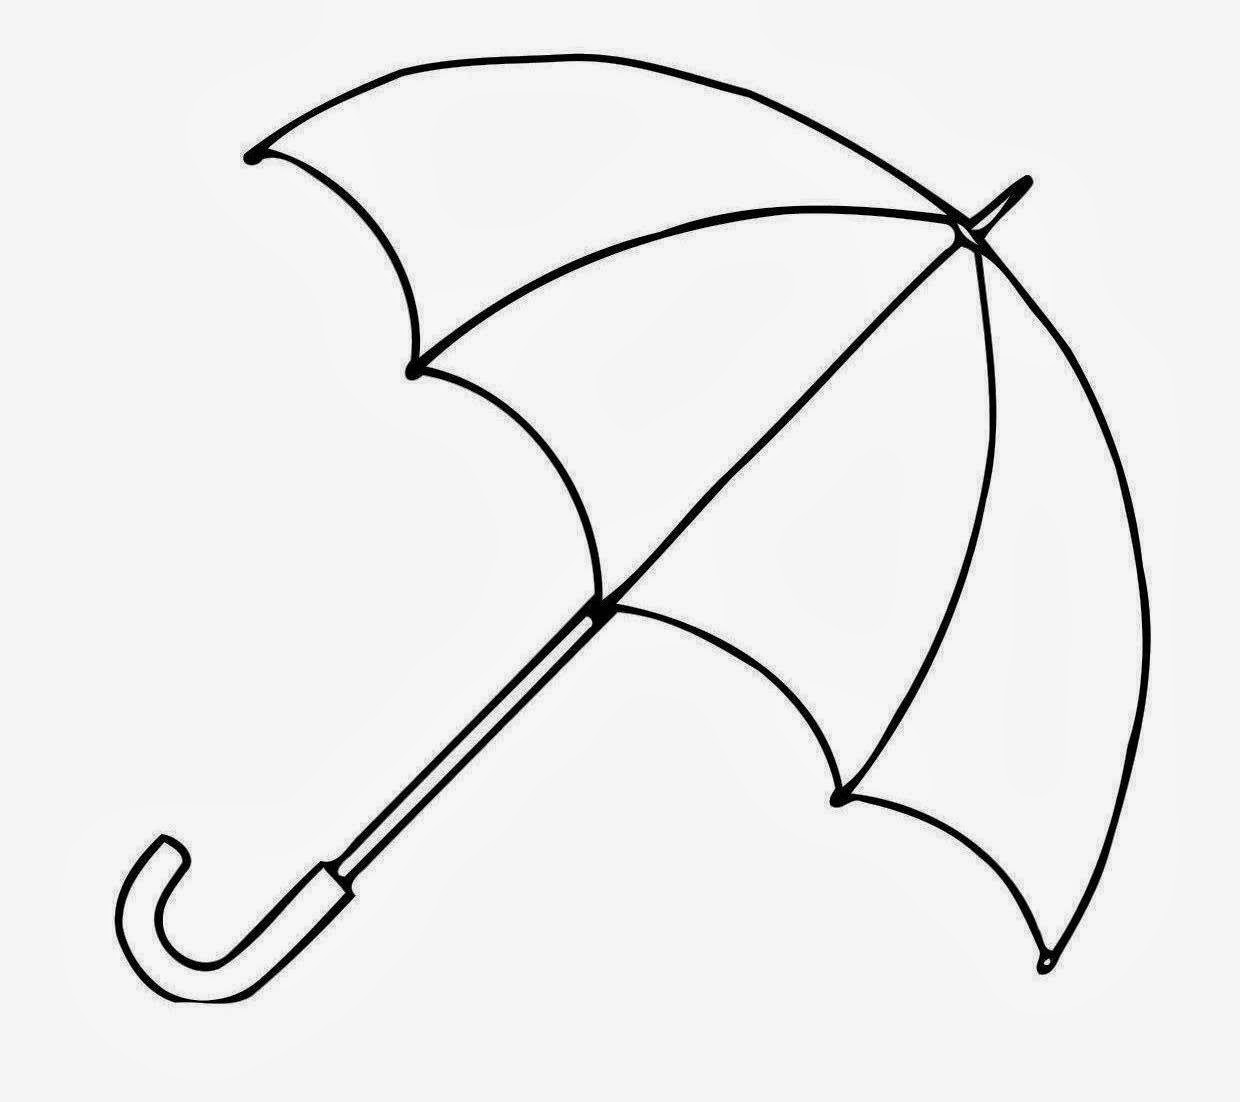 Drawn umbrella Panda Umbrella Free Drawing Images